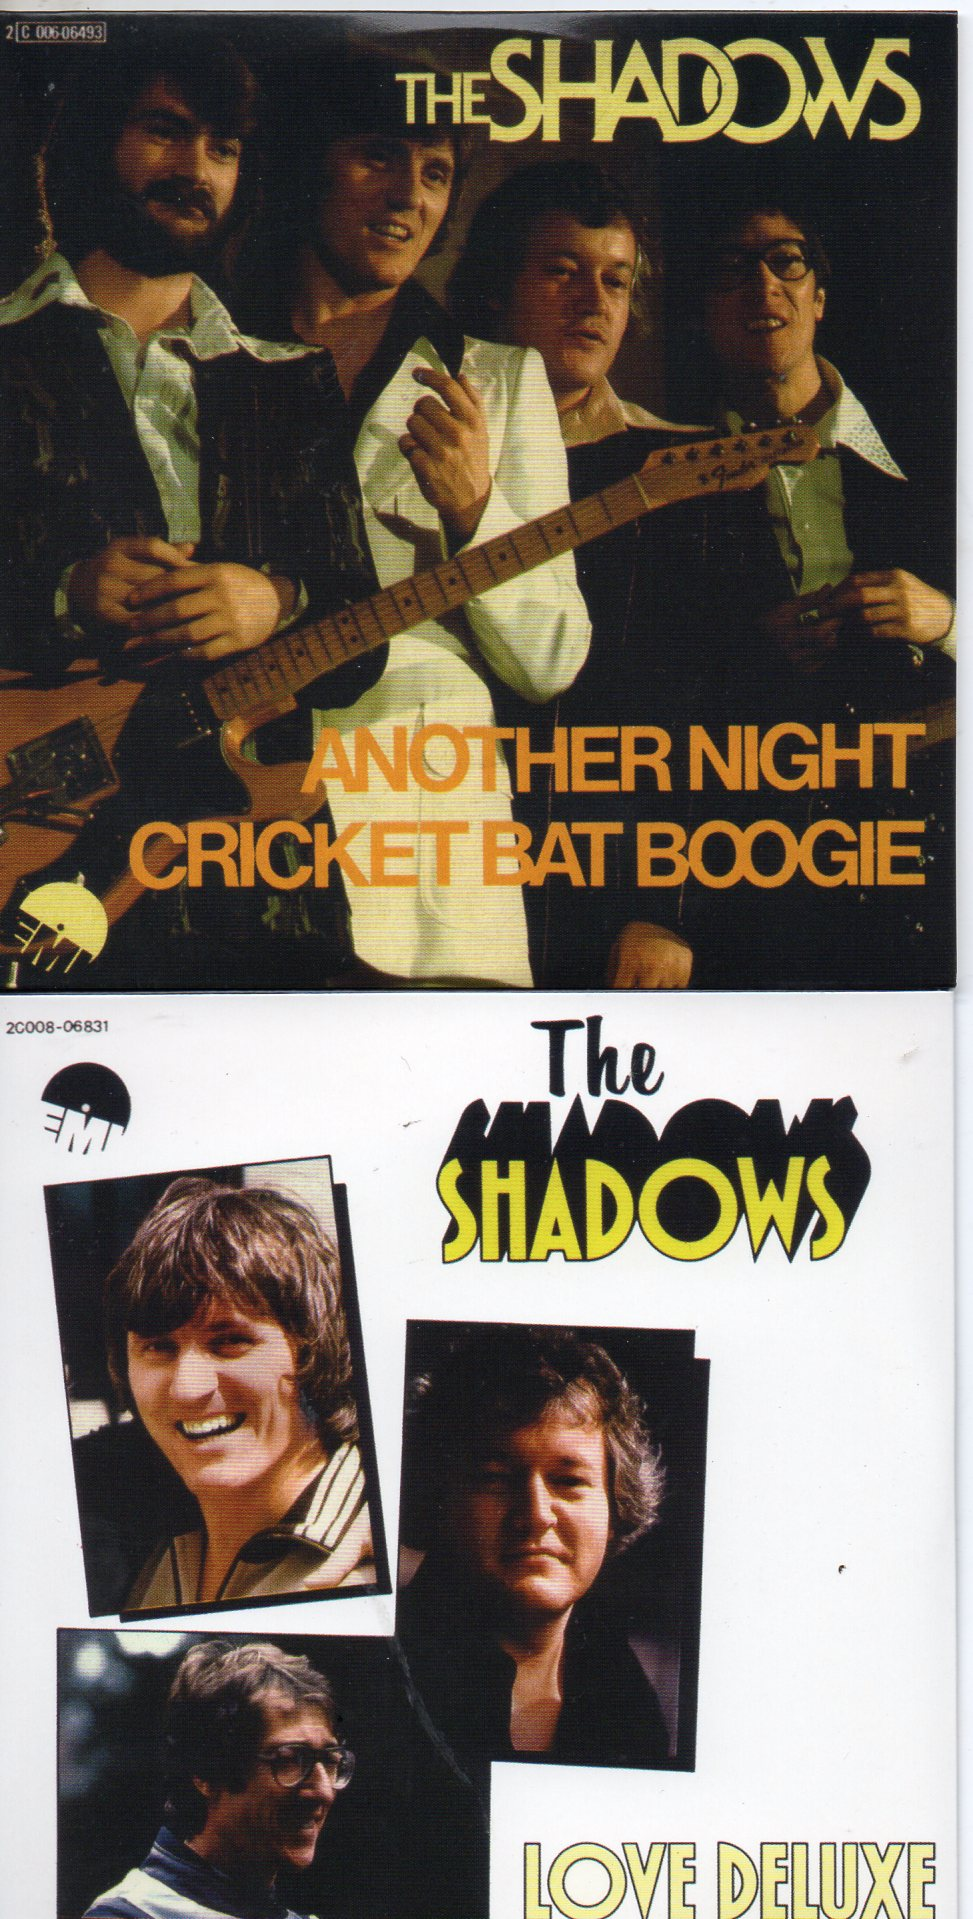 THE SHADOWS - Another Night 4-track CARD SLEEVE - CD single